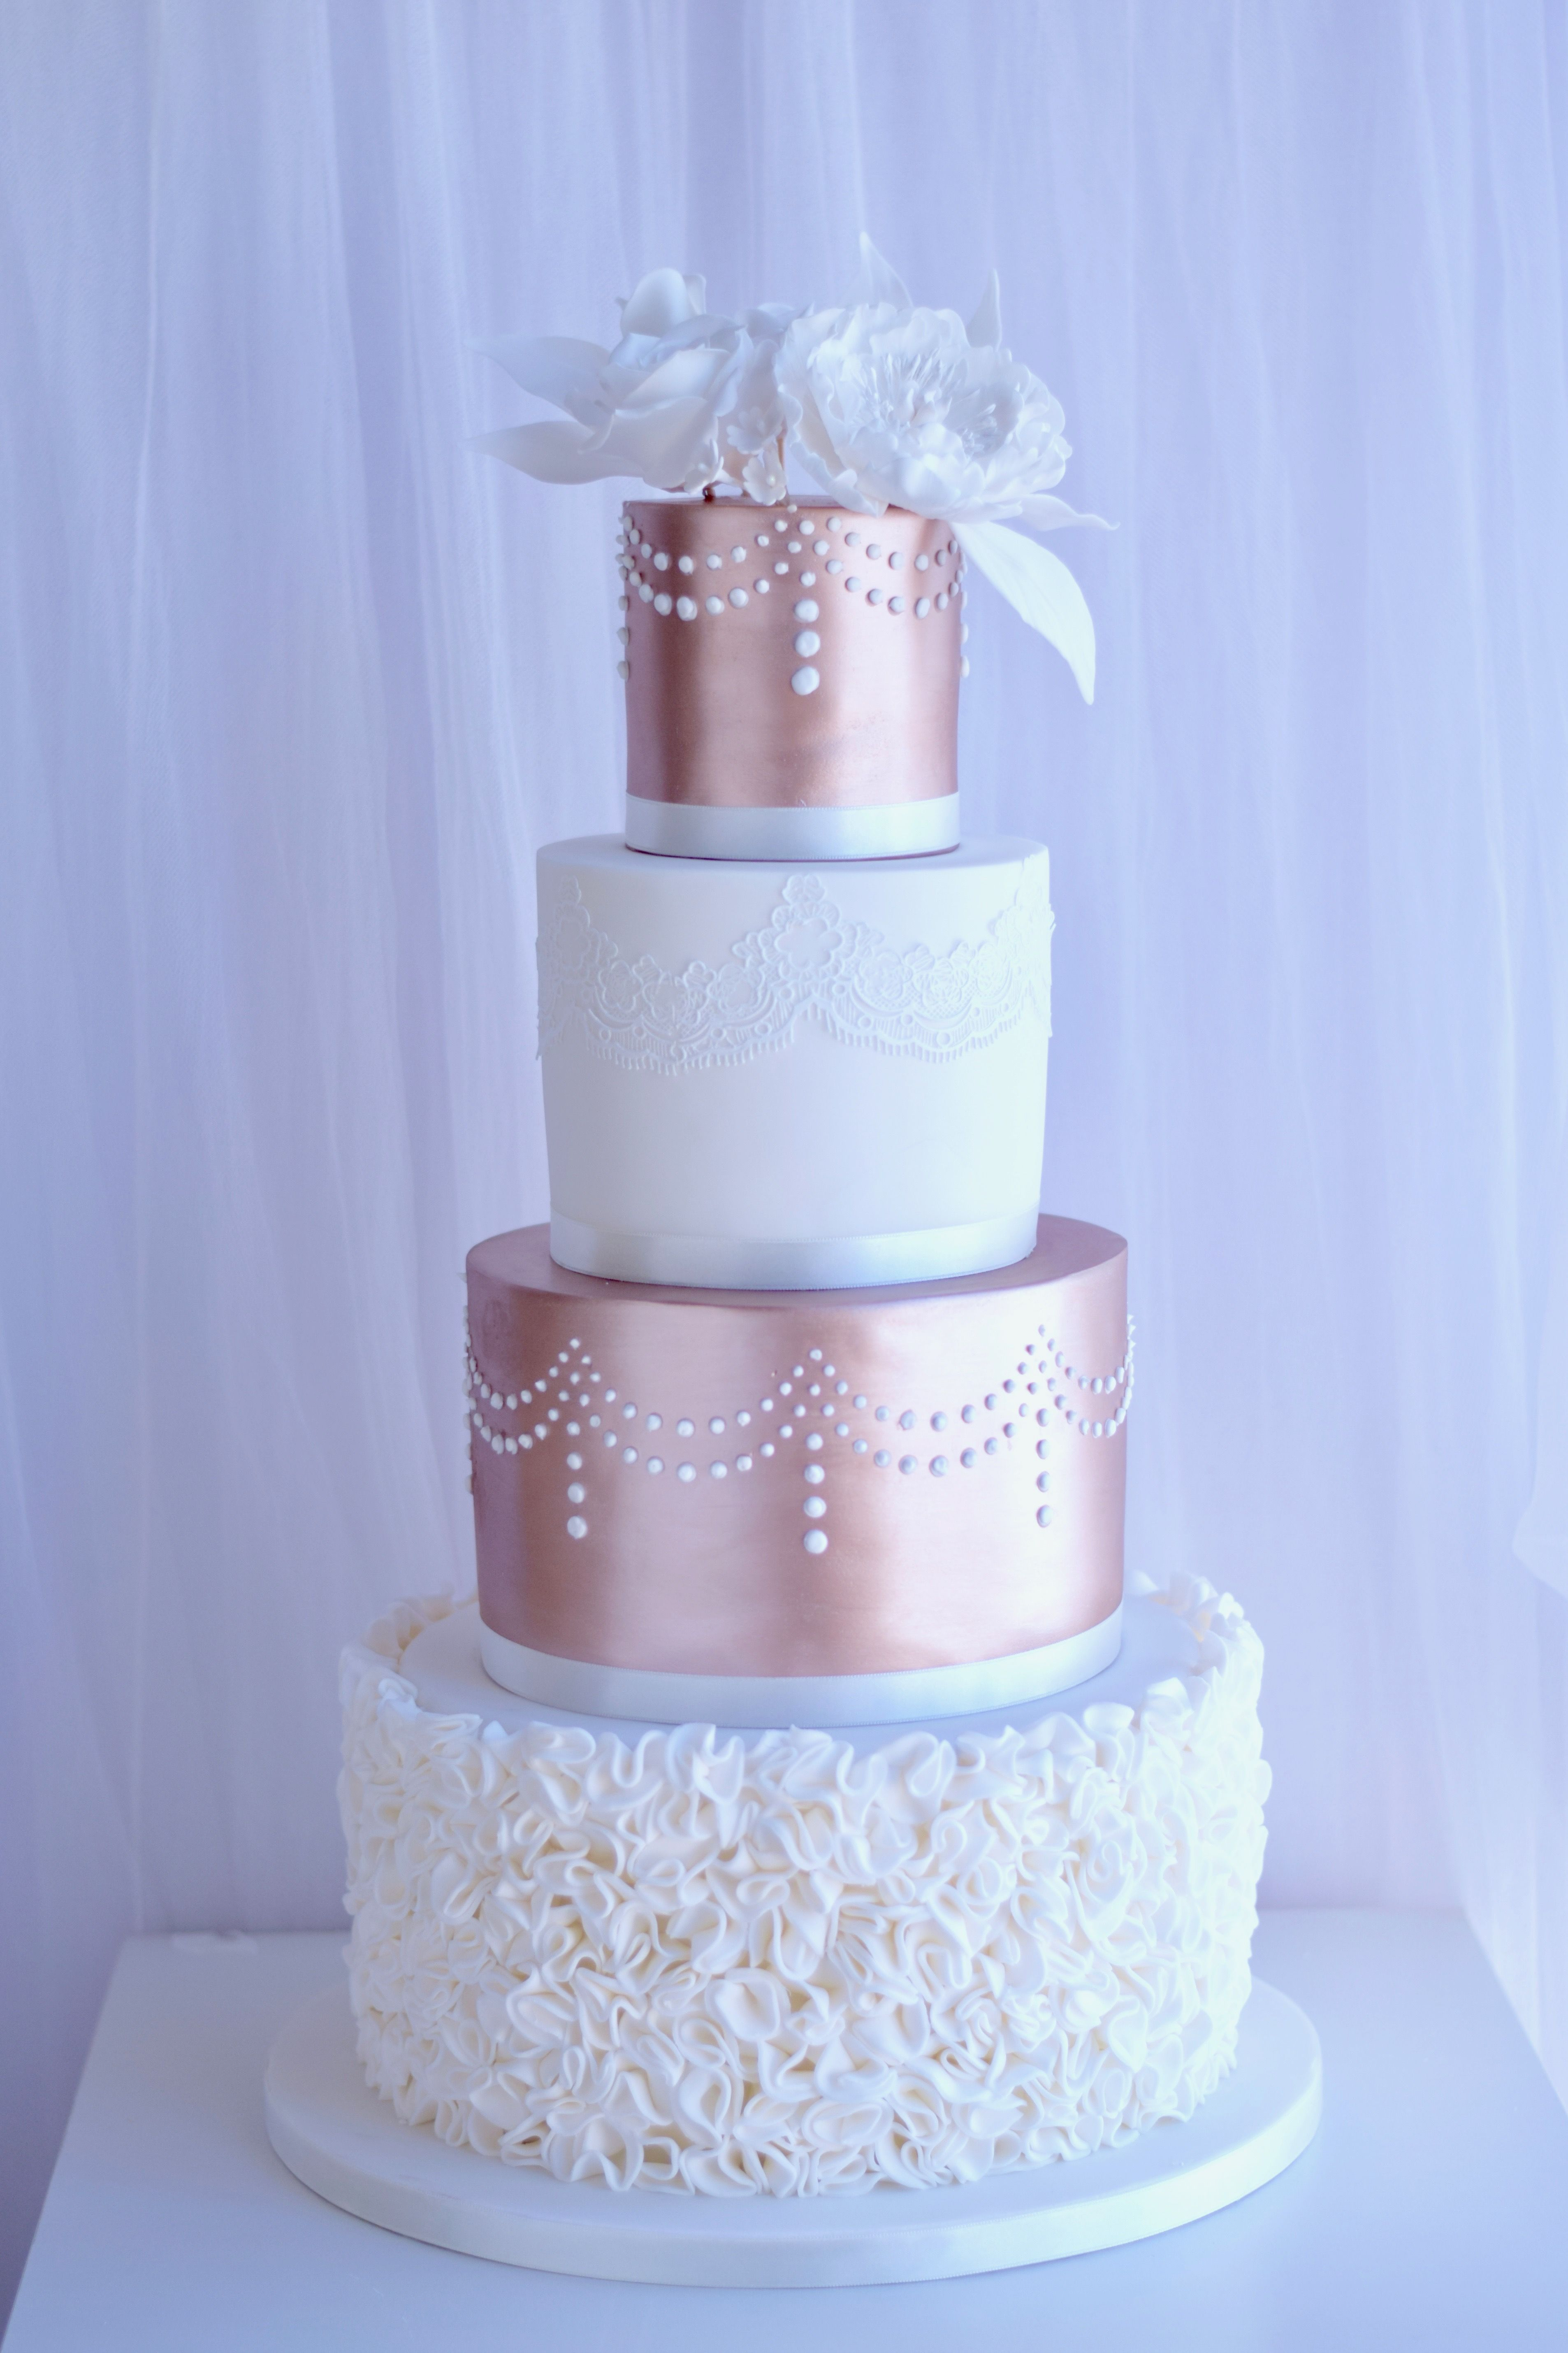 Elegant 4 Tier Rose Gold Wedding Cake With Ruffles And Sugar